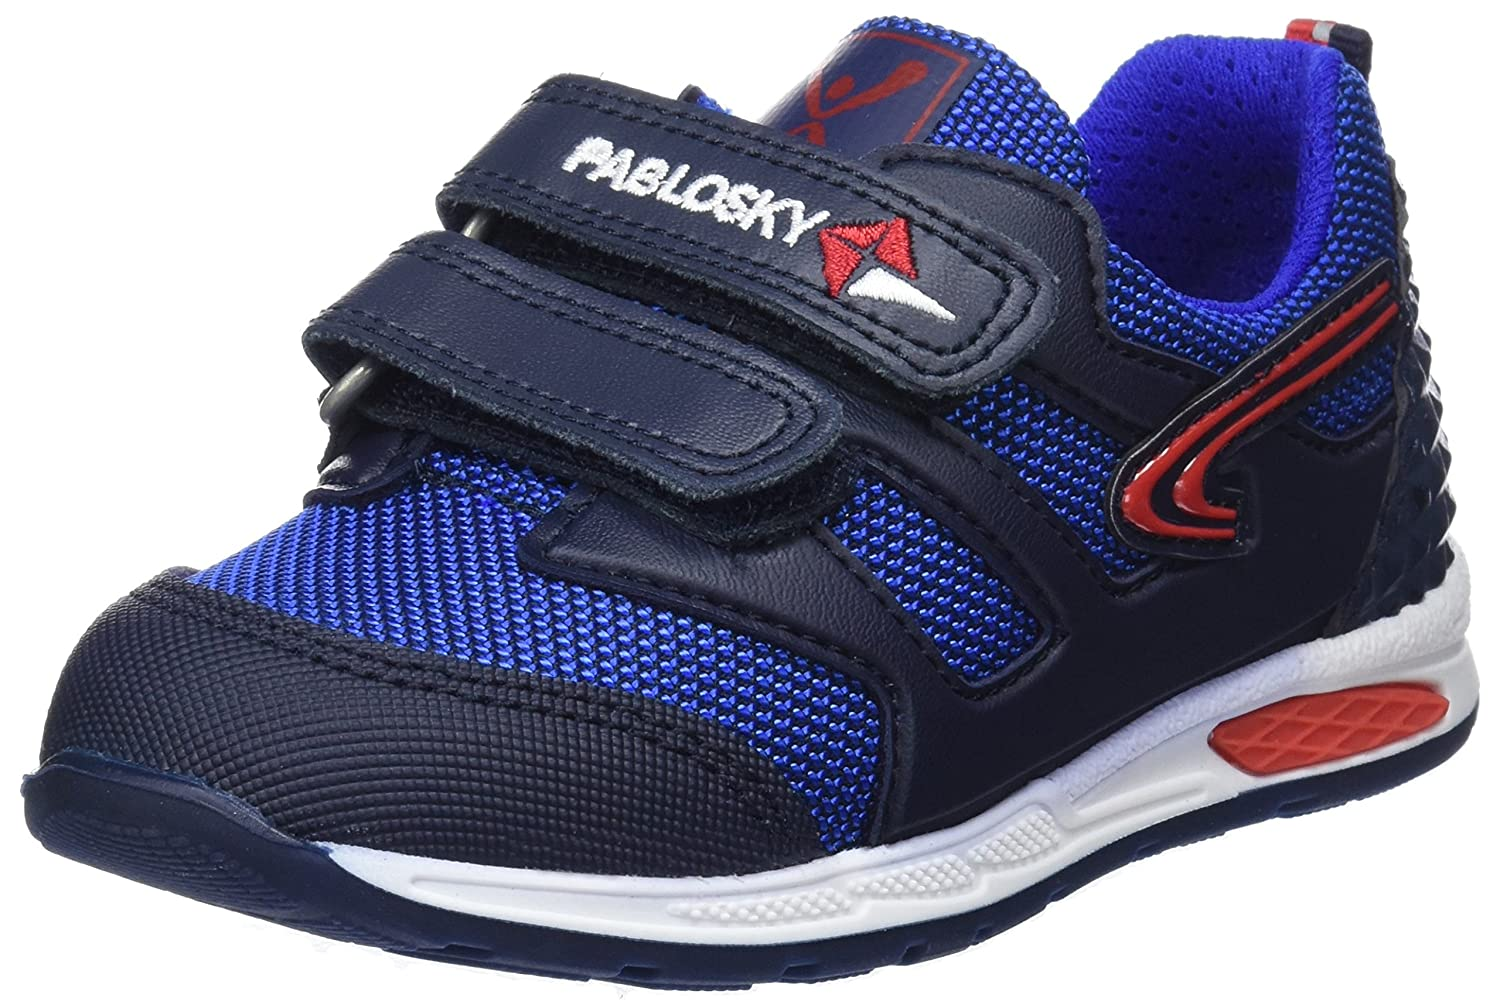 Pablosky Boys 272124 Low-Top Sneakers